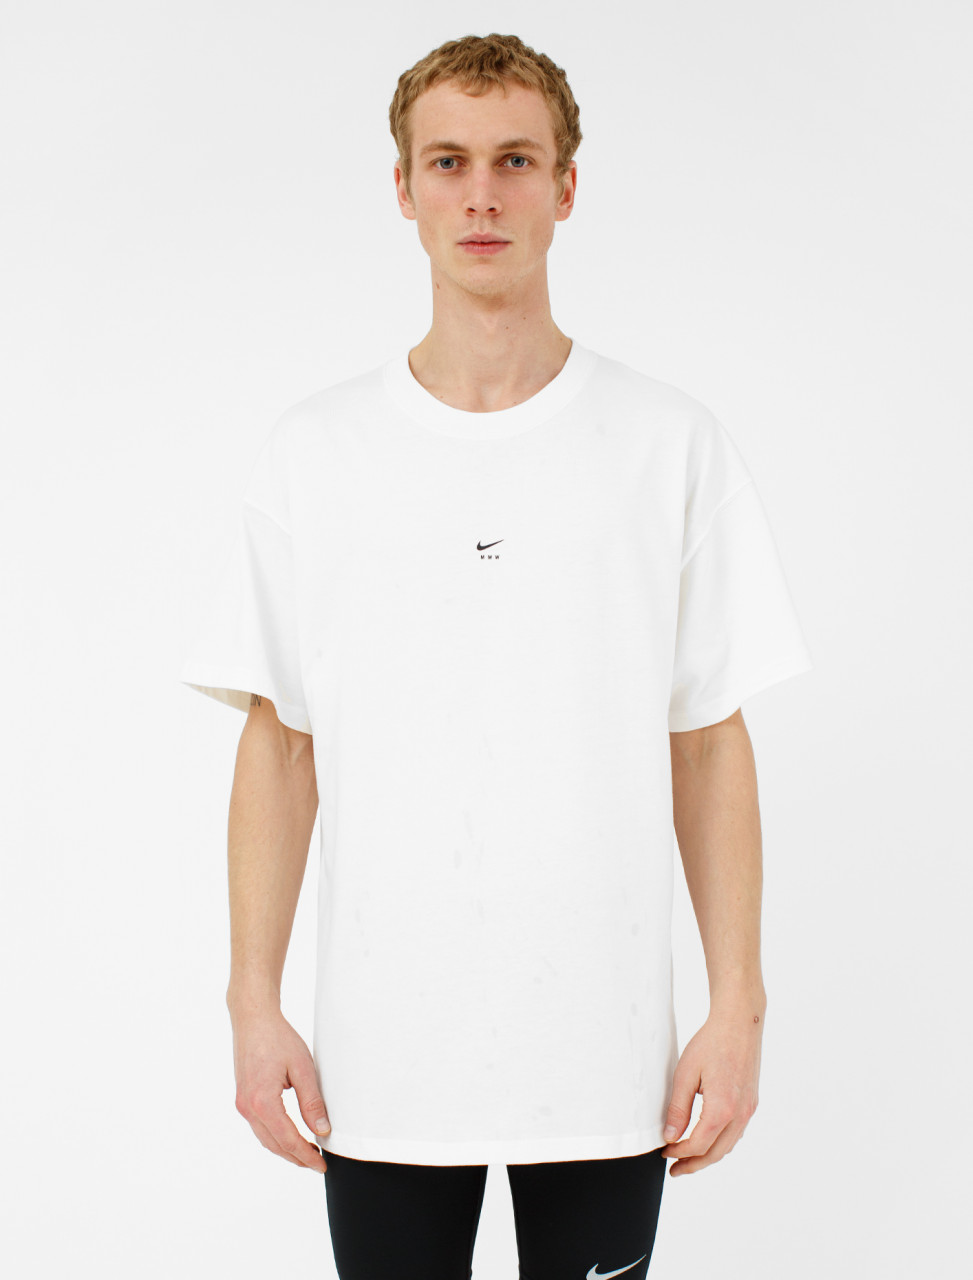 x MMW Short Sleeve T-Shirt in White